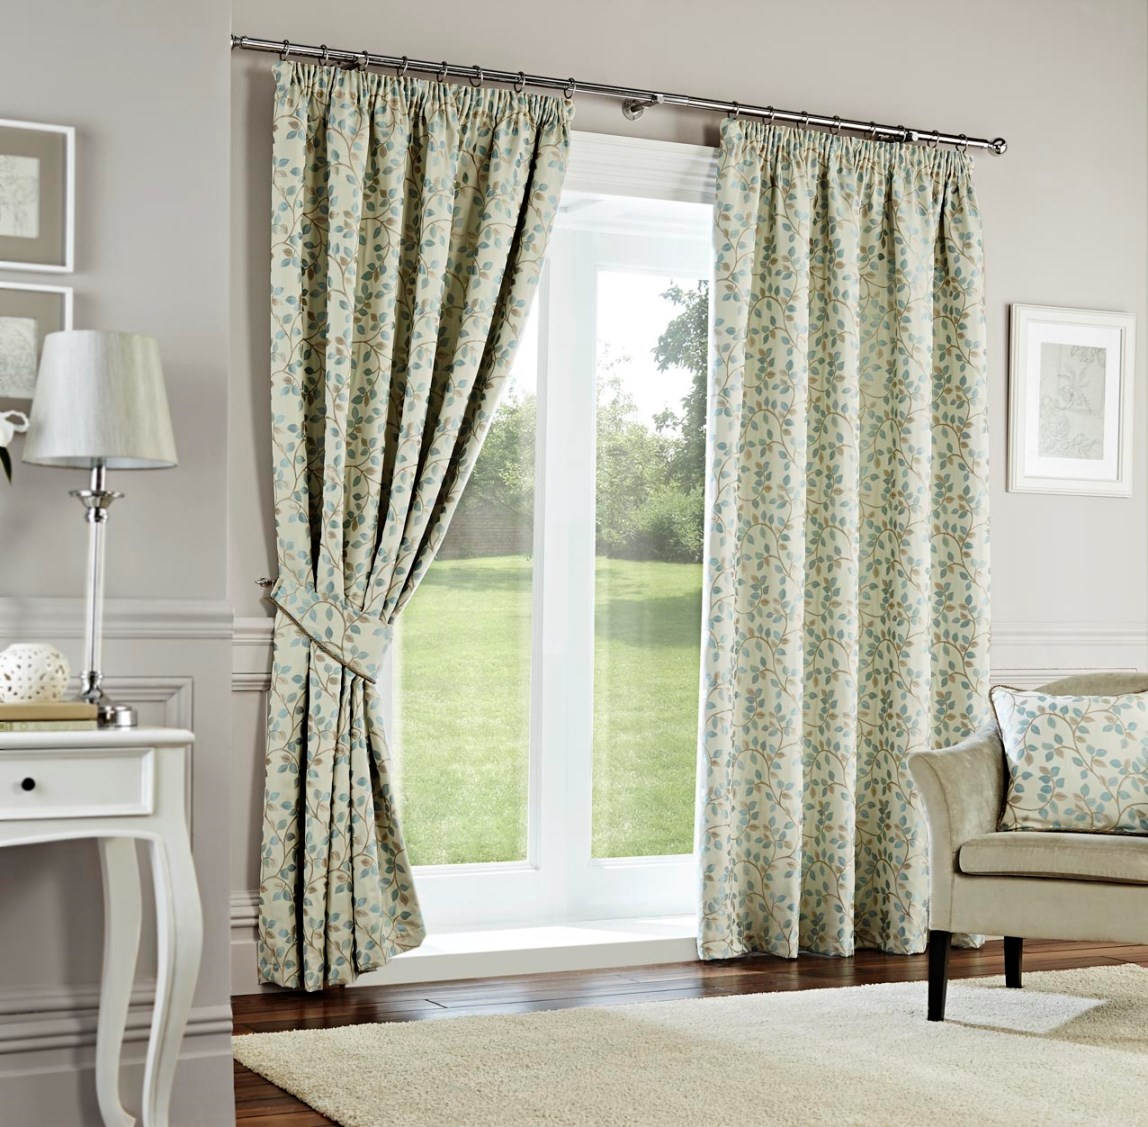 Oakhurst- Ready- Made (Jacquard) Curtains